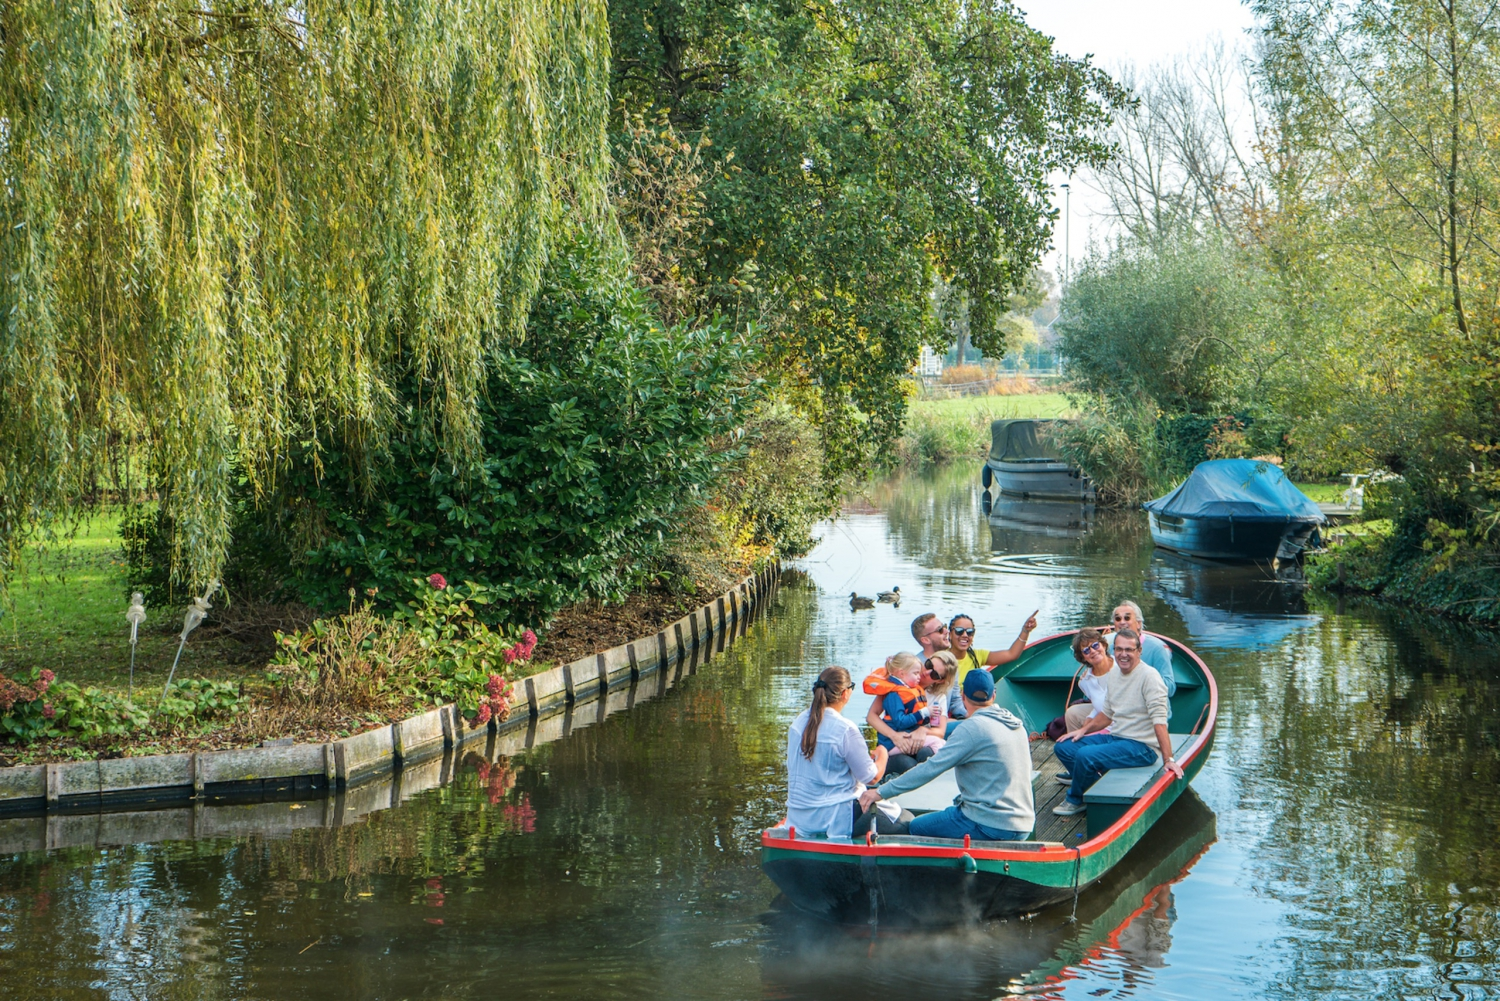 Countryside Boat Cruise Tour of Monnickendam